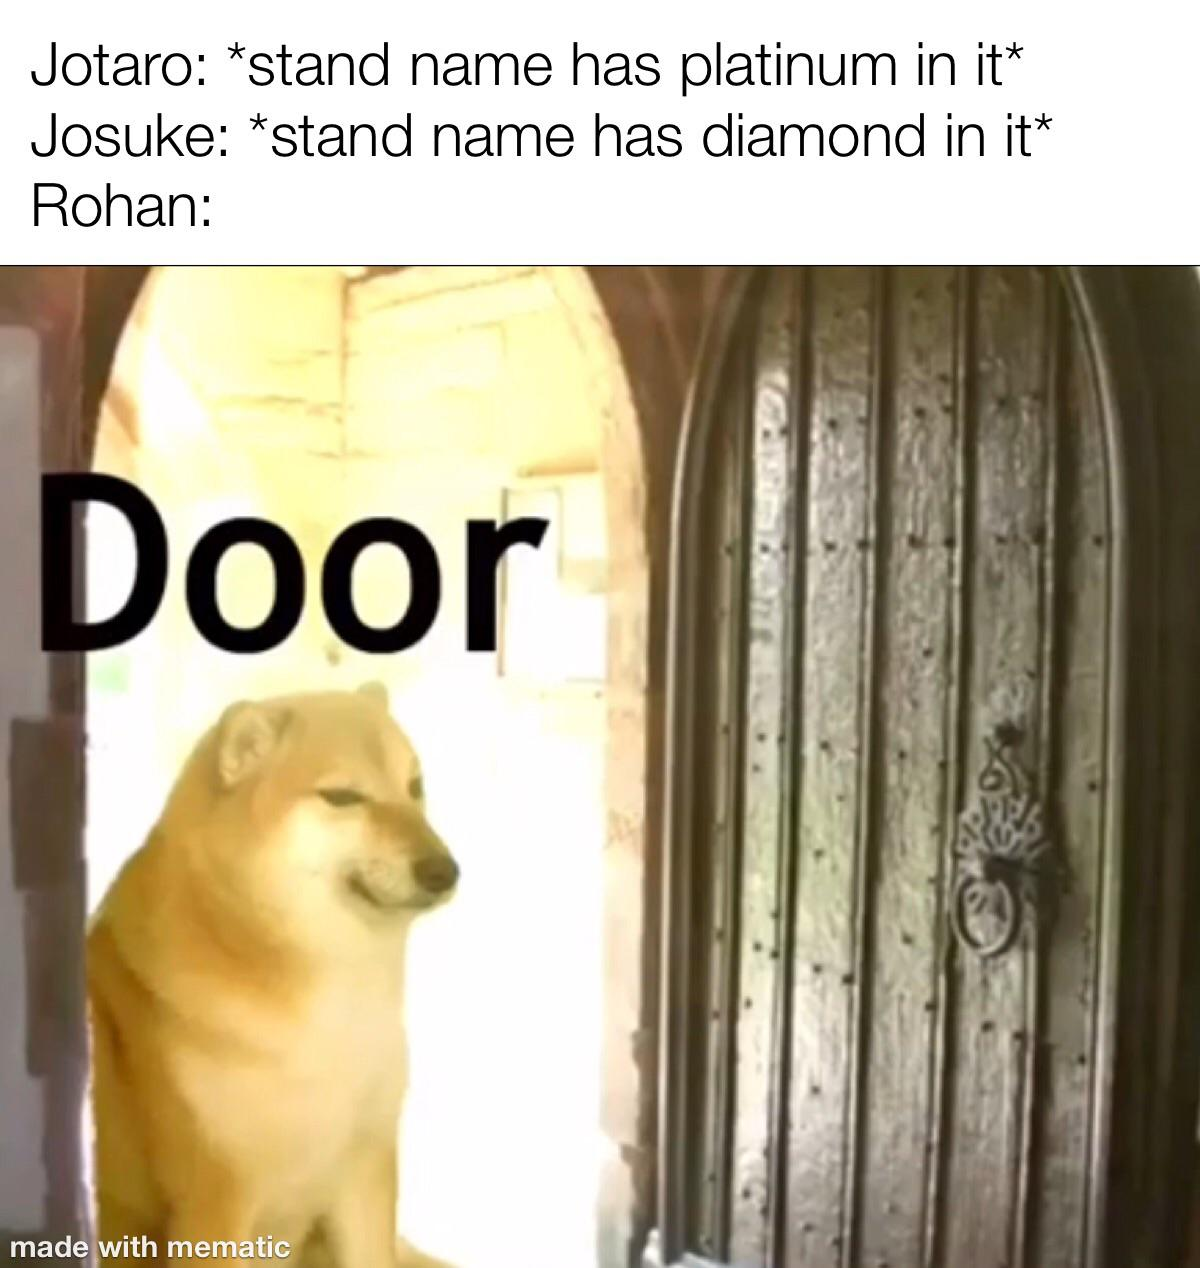 I Got The Door Image From This Video Https M Youtube Com